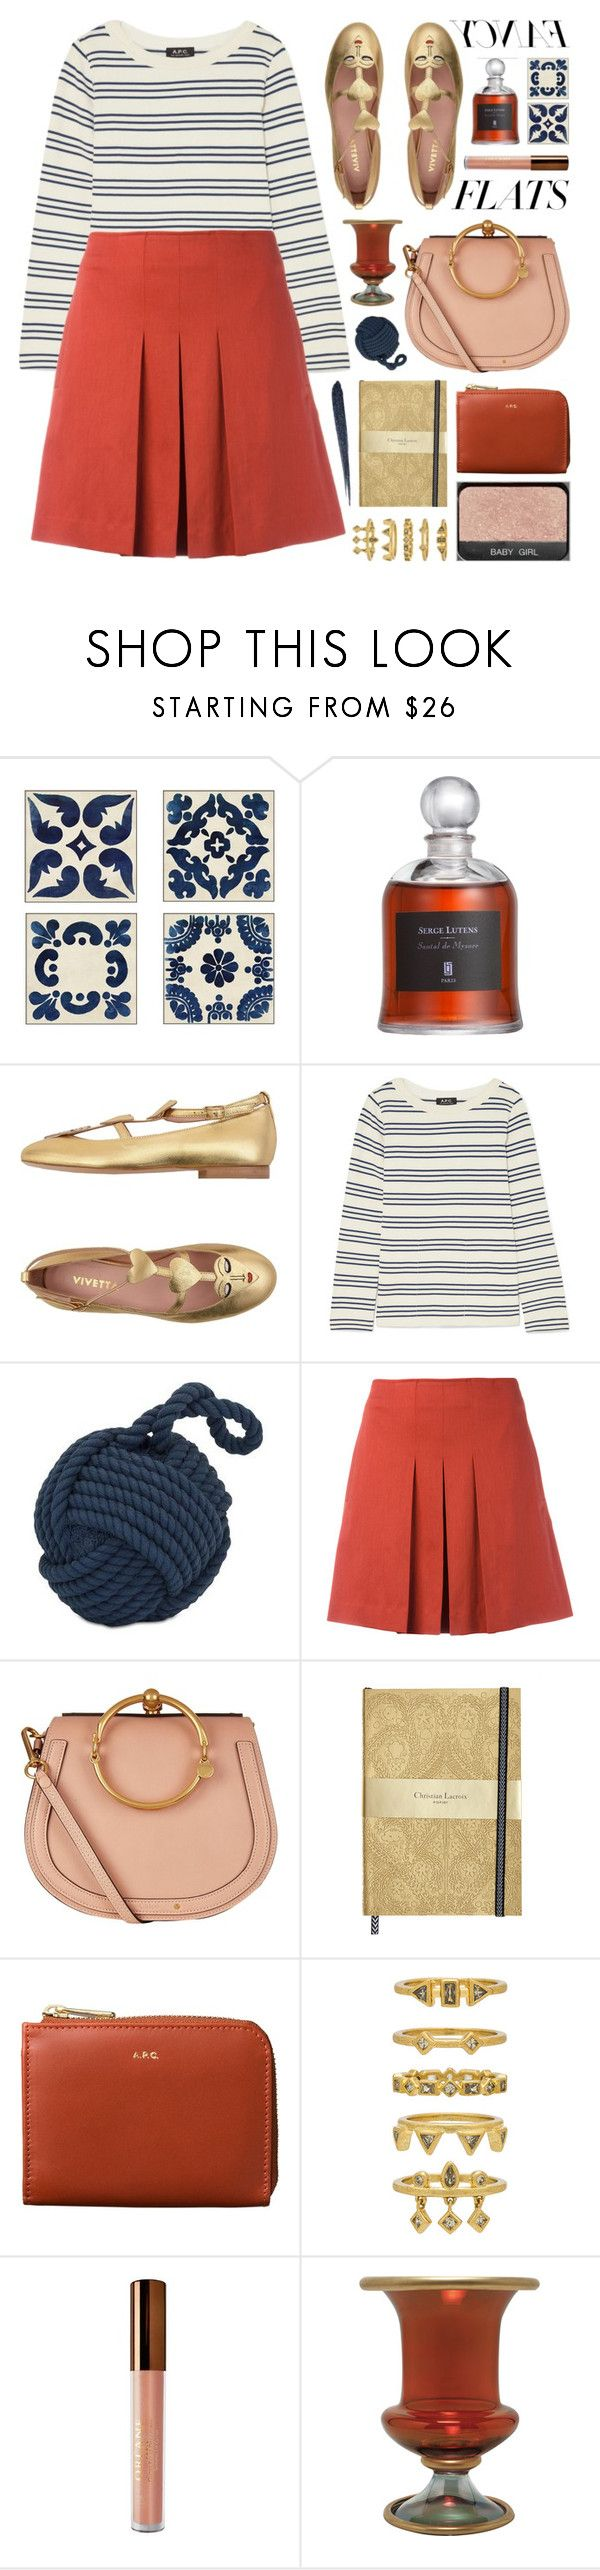 """""""6 days left to join (view description)"""" by jesuisunlapin on Polyvore featuring Pottery Barn, VIVETTA, A.P.C., IMAX Corporation, Chloé, Luv Aj, GET LOST, Orlane, Bobbi Brown Cosmetics and stripes"""